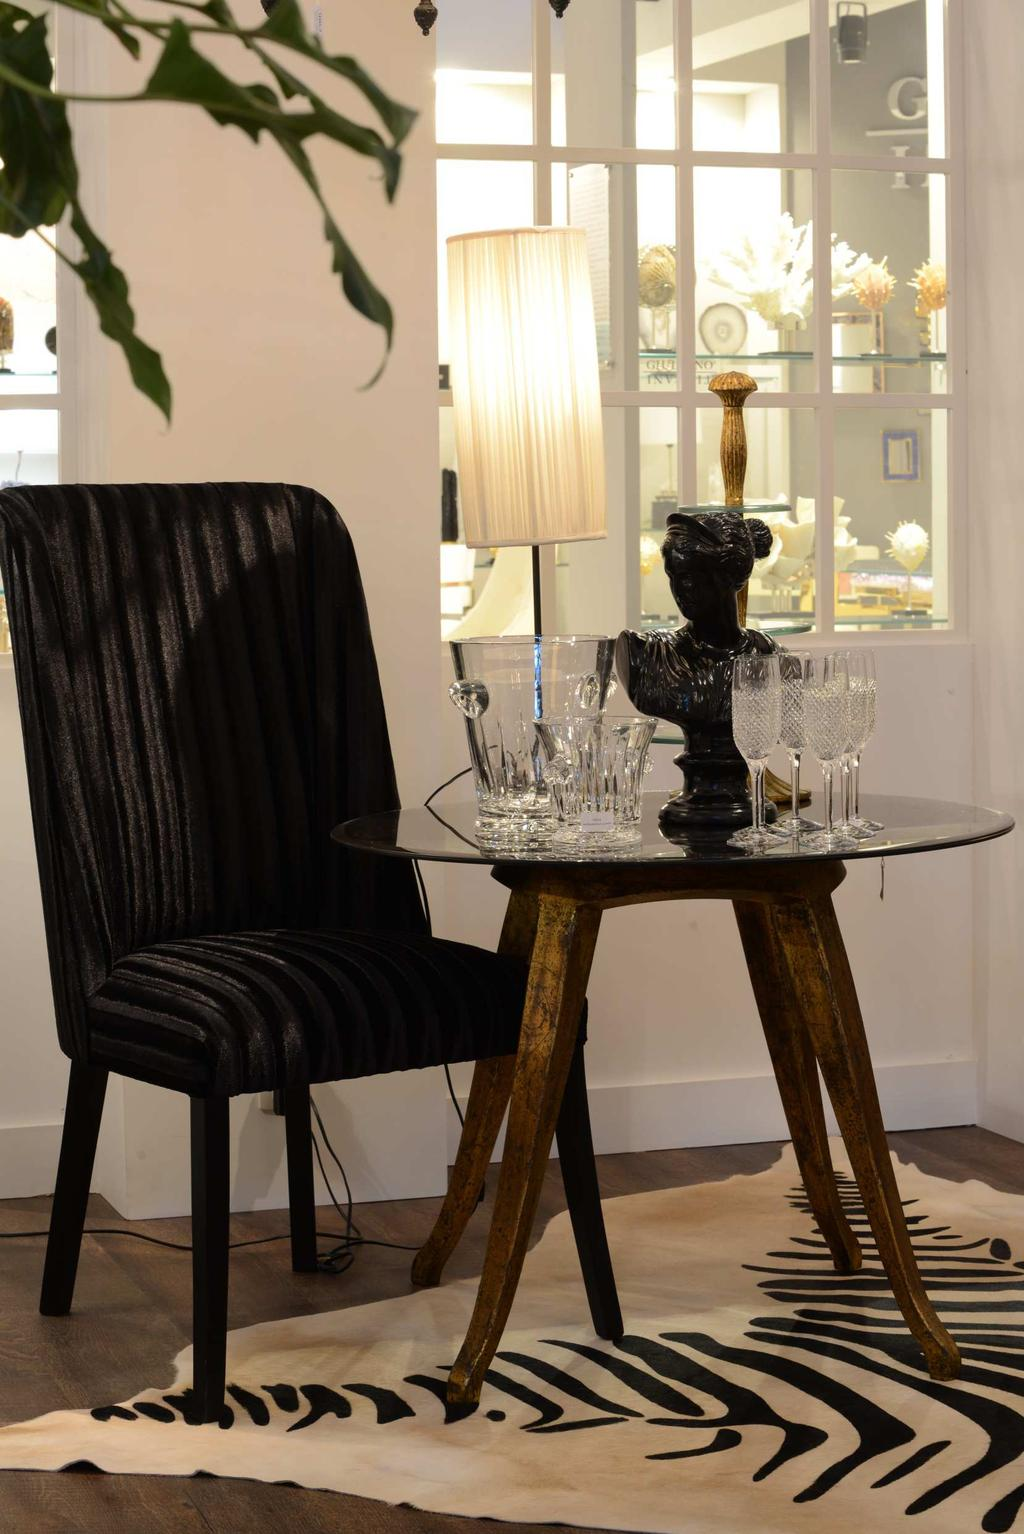 F6100 Corsa Chair with Black Velvet FR312-5 Vintage Table Aged Mirror Gold (d85;h67) K5617-0 Champagne Bucket Cristal K5616-0 Ice Bucket Cristal K5603-0 Champagne Glass